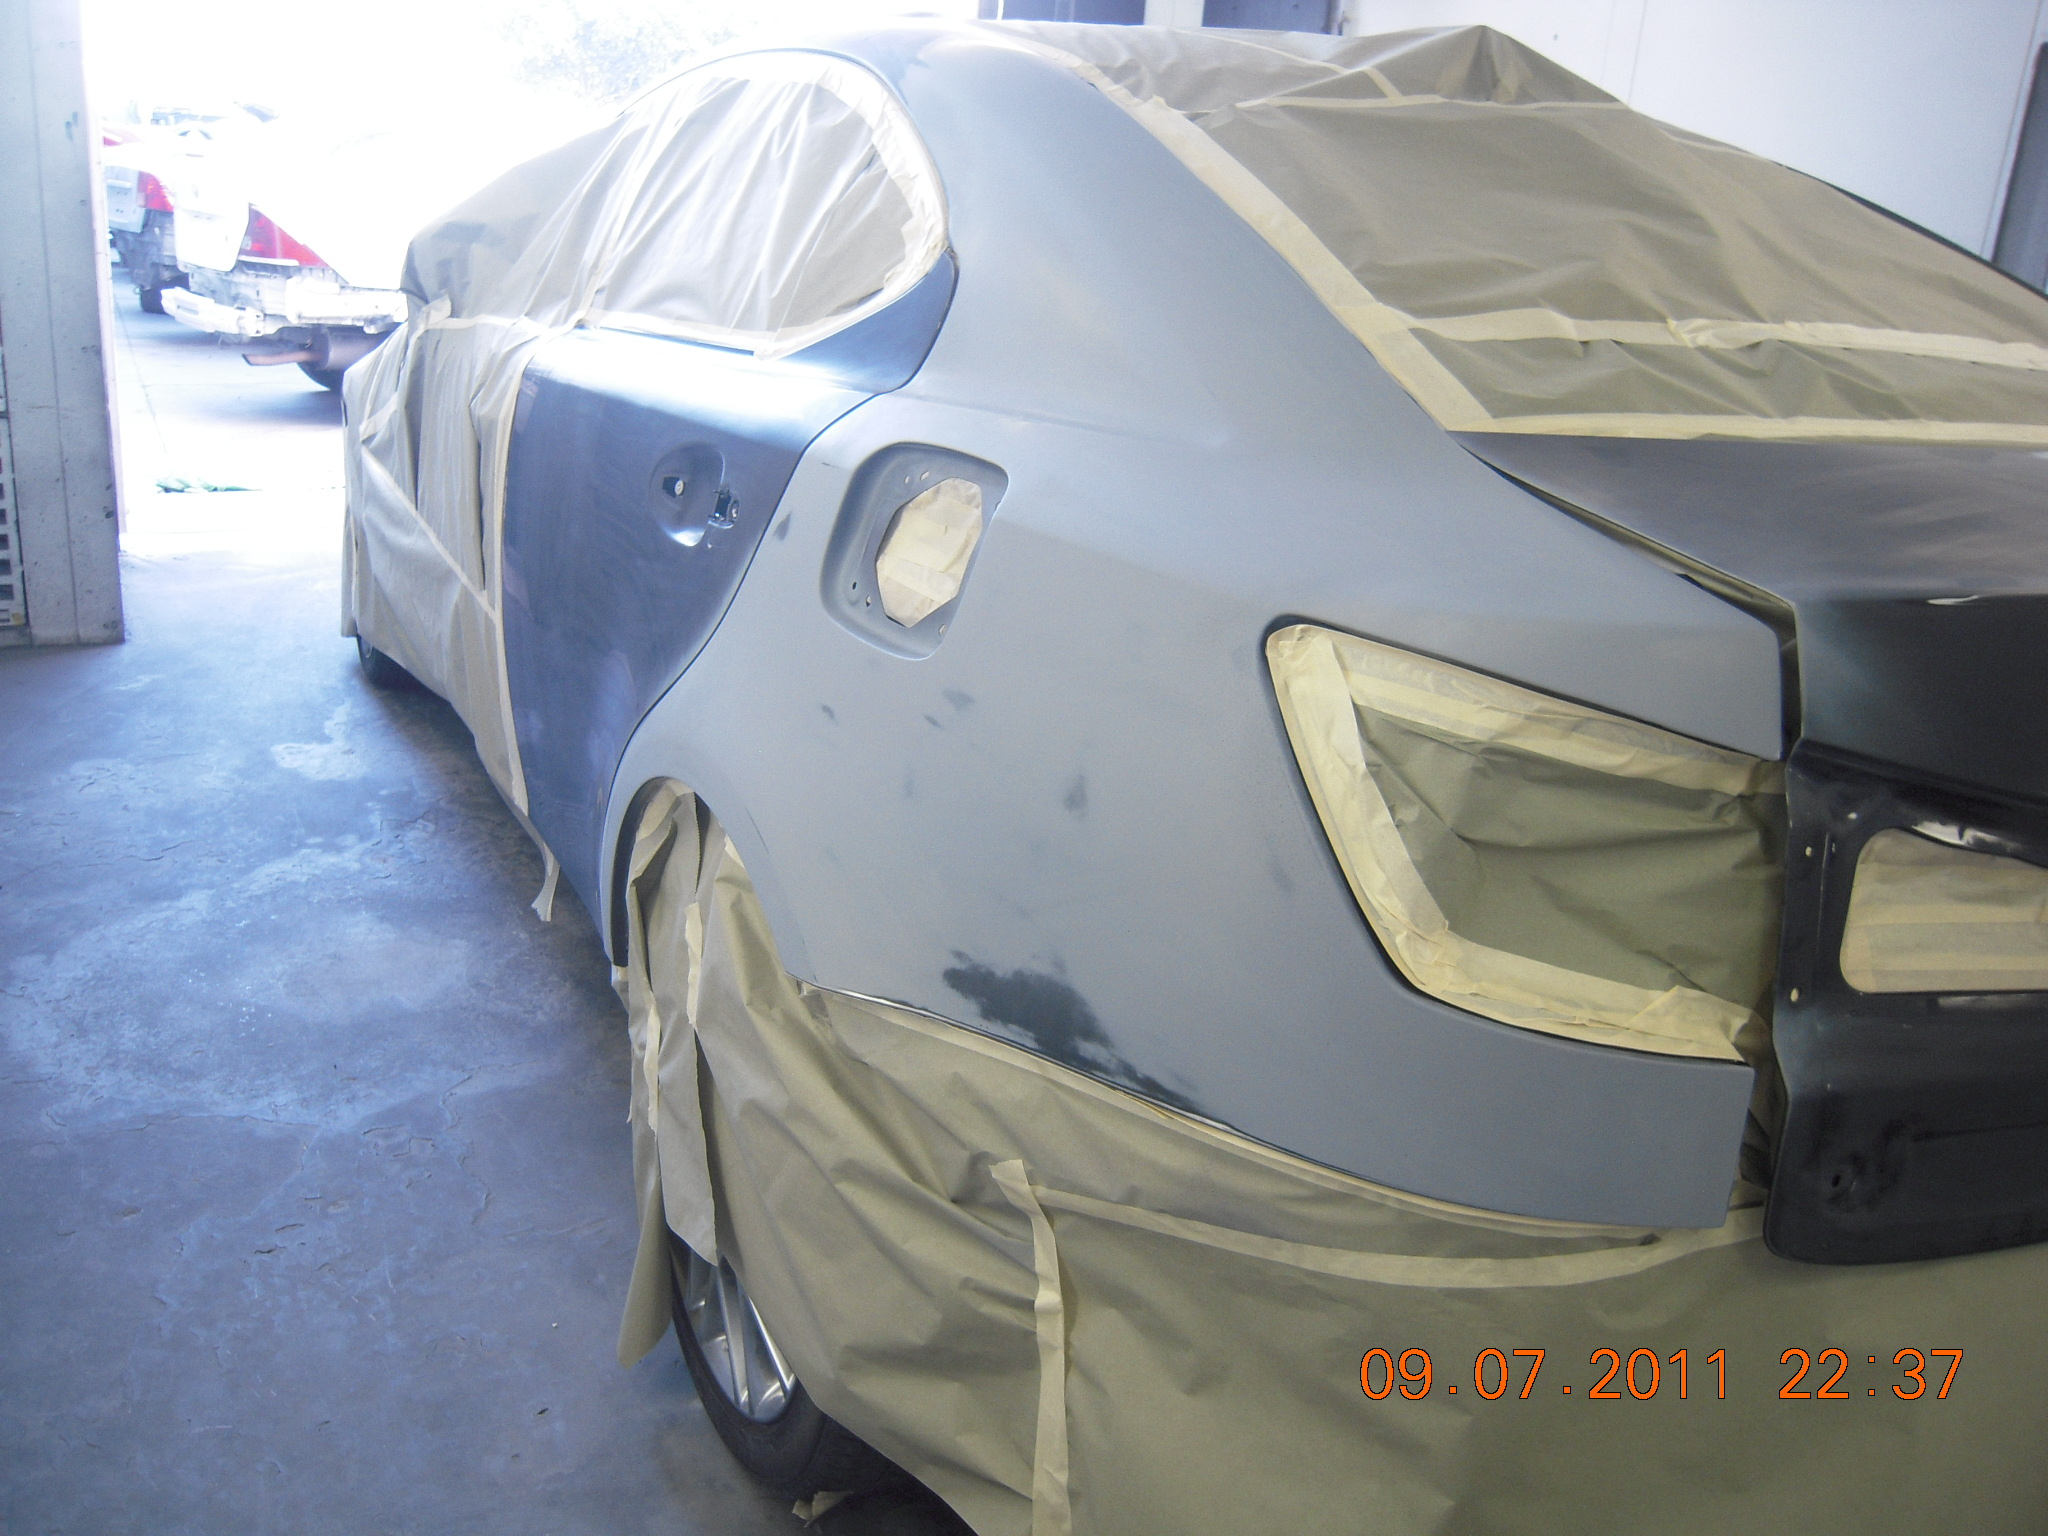 west coast body and paint black lexus is250 2   WEST COAST BODY AND     west coast body and paint black lexus is250 2